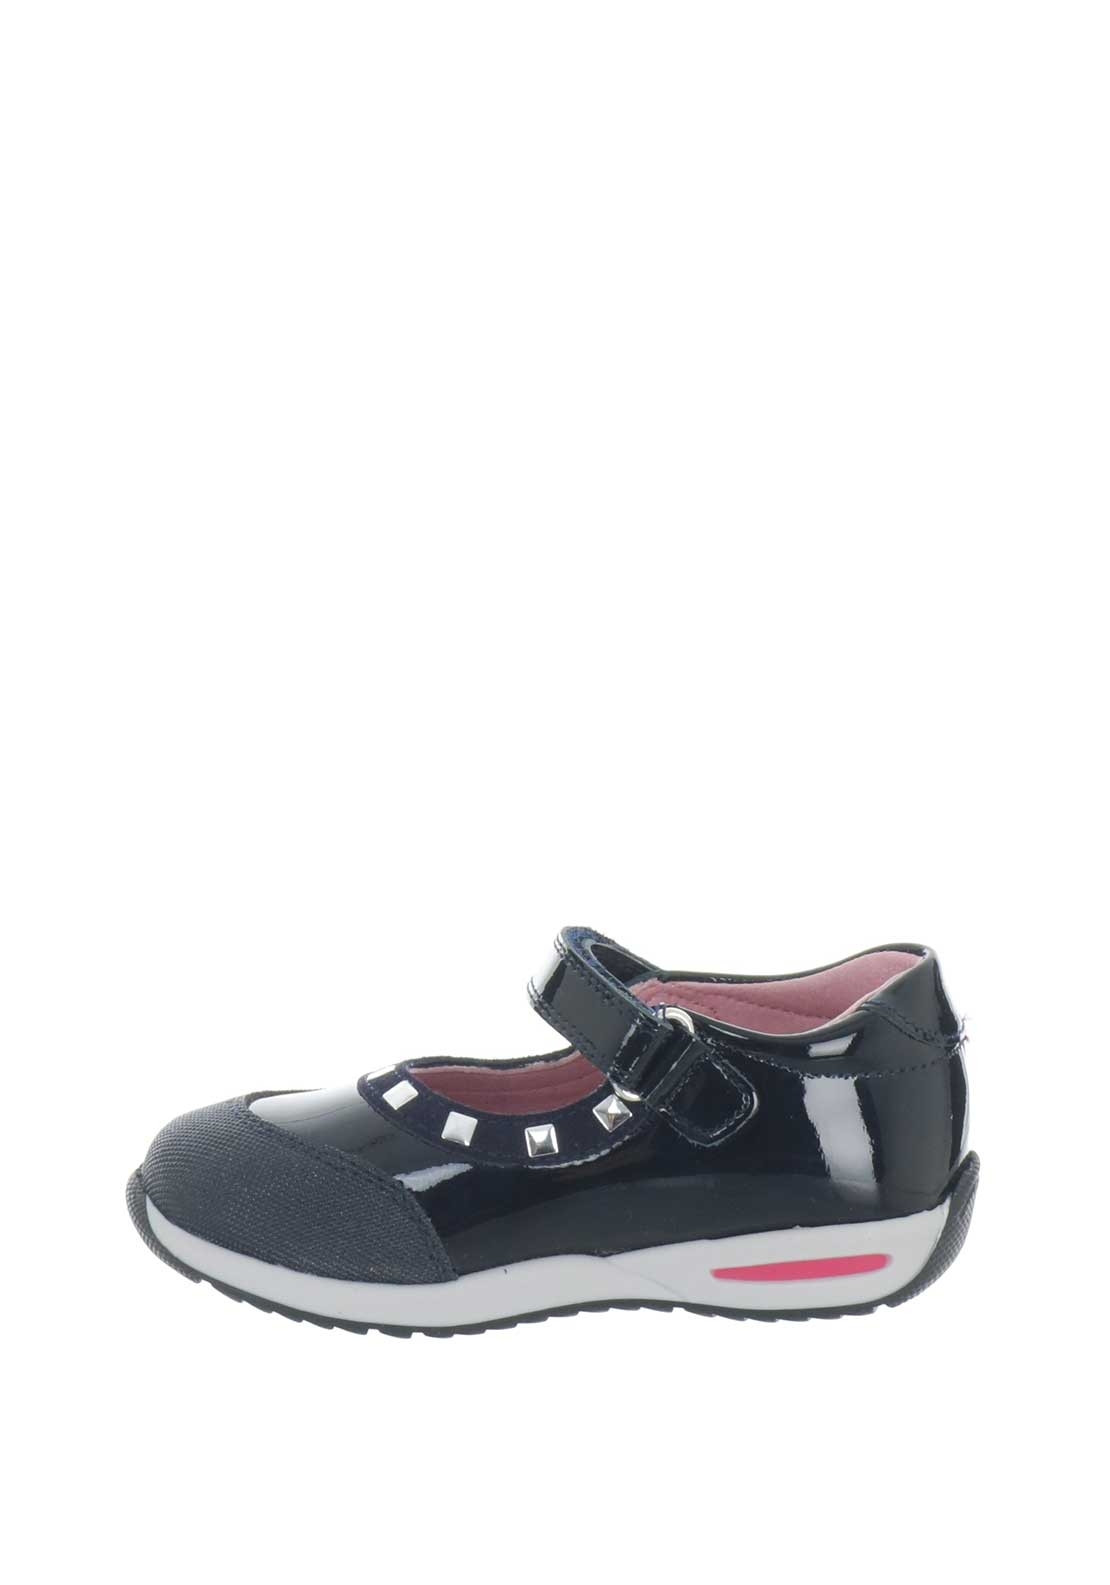 Pablosky Baby Shoes